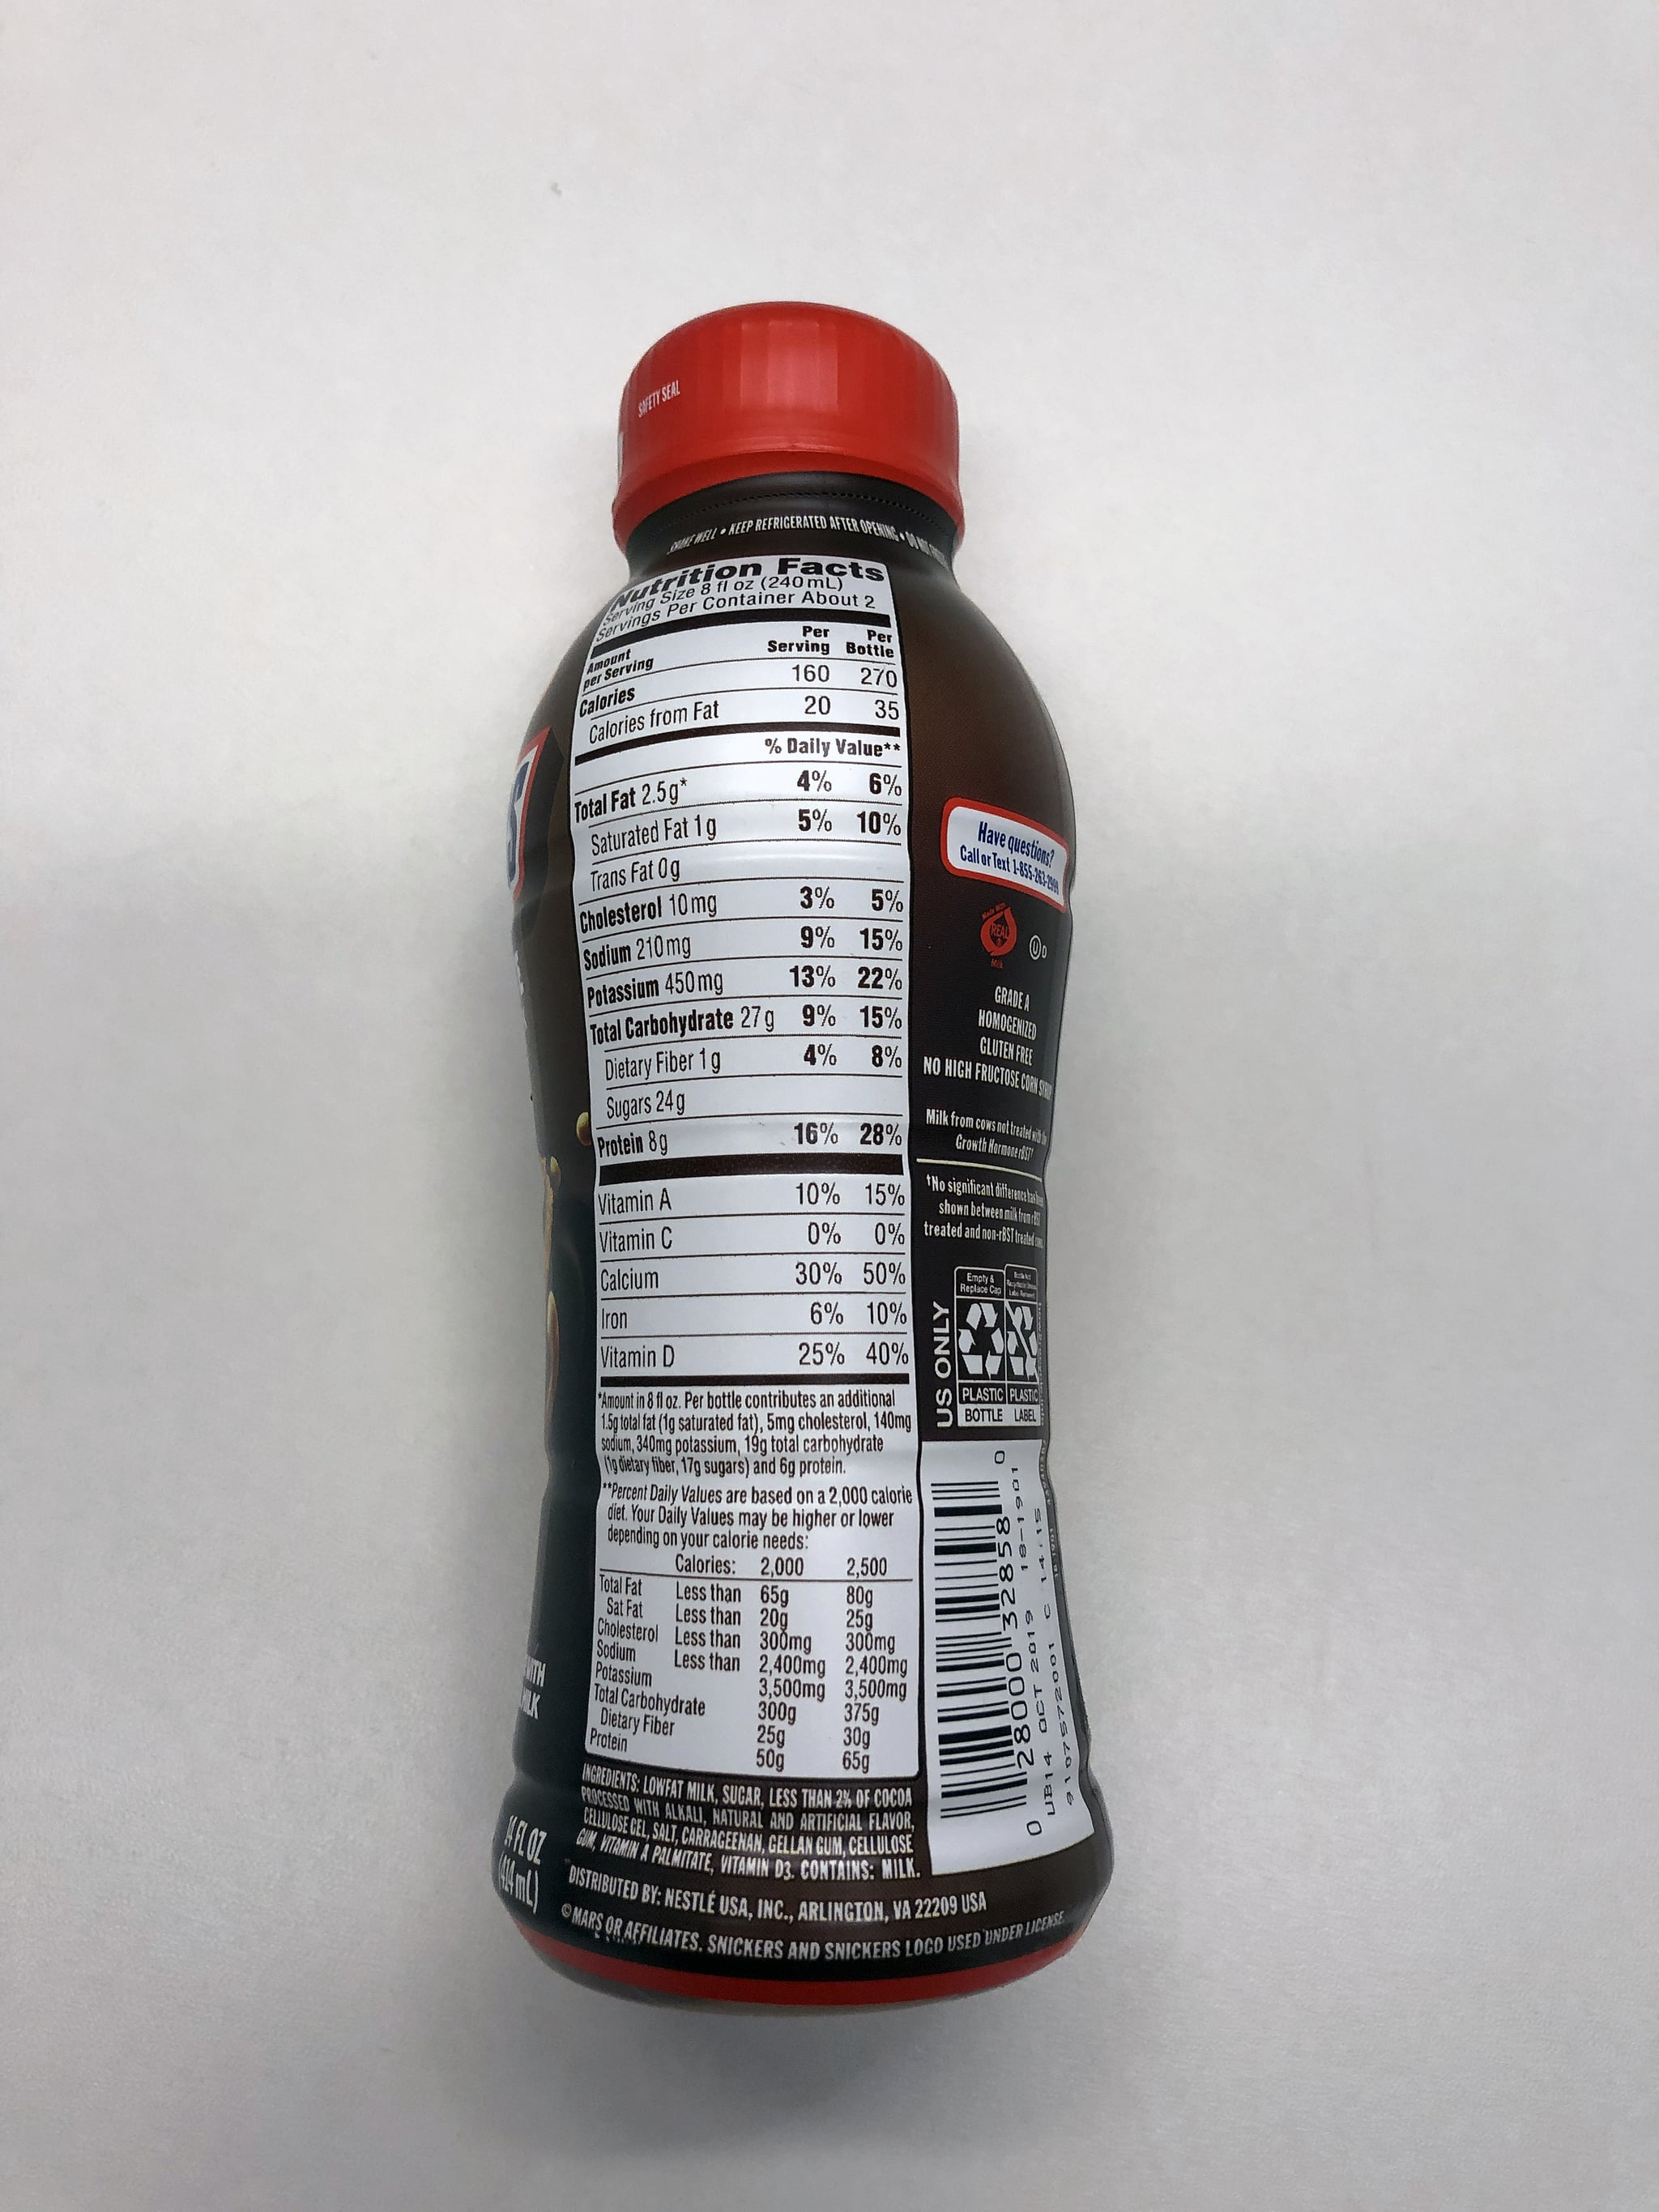 30 Nutrition Label For Snickers - Labels Database 2020